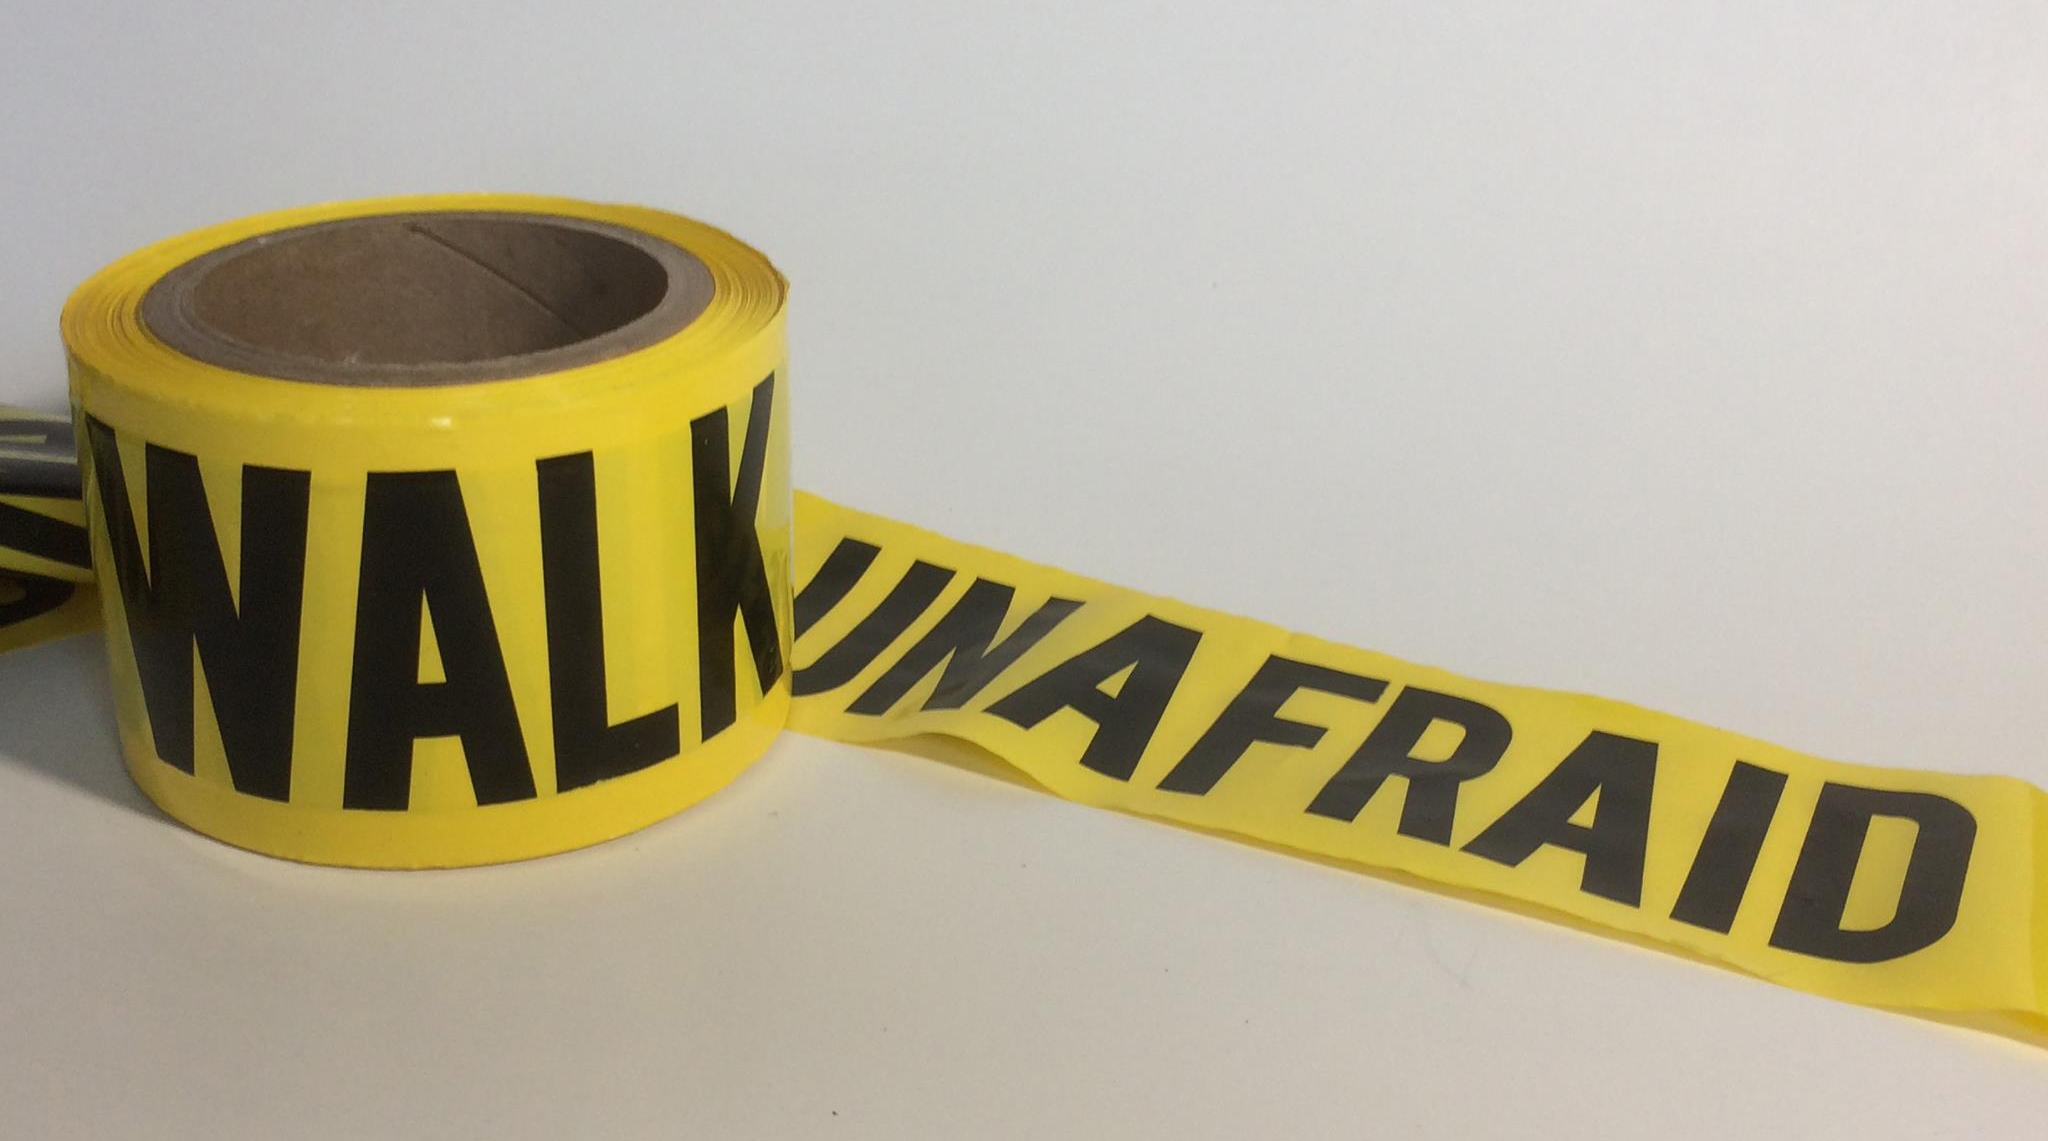 walk unafraid tape horizontal